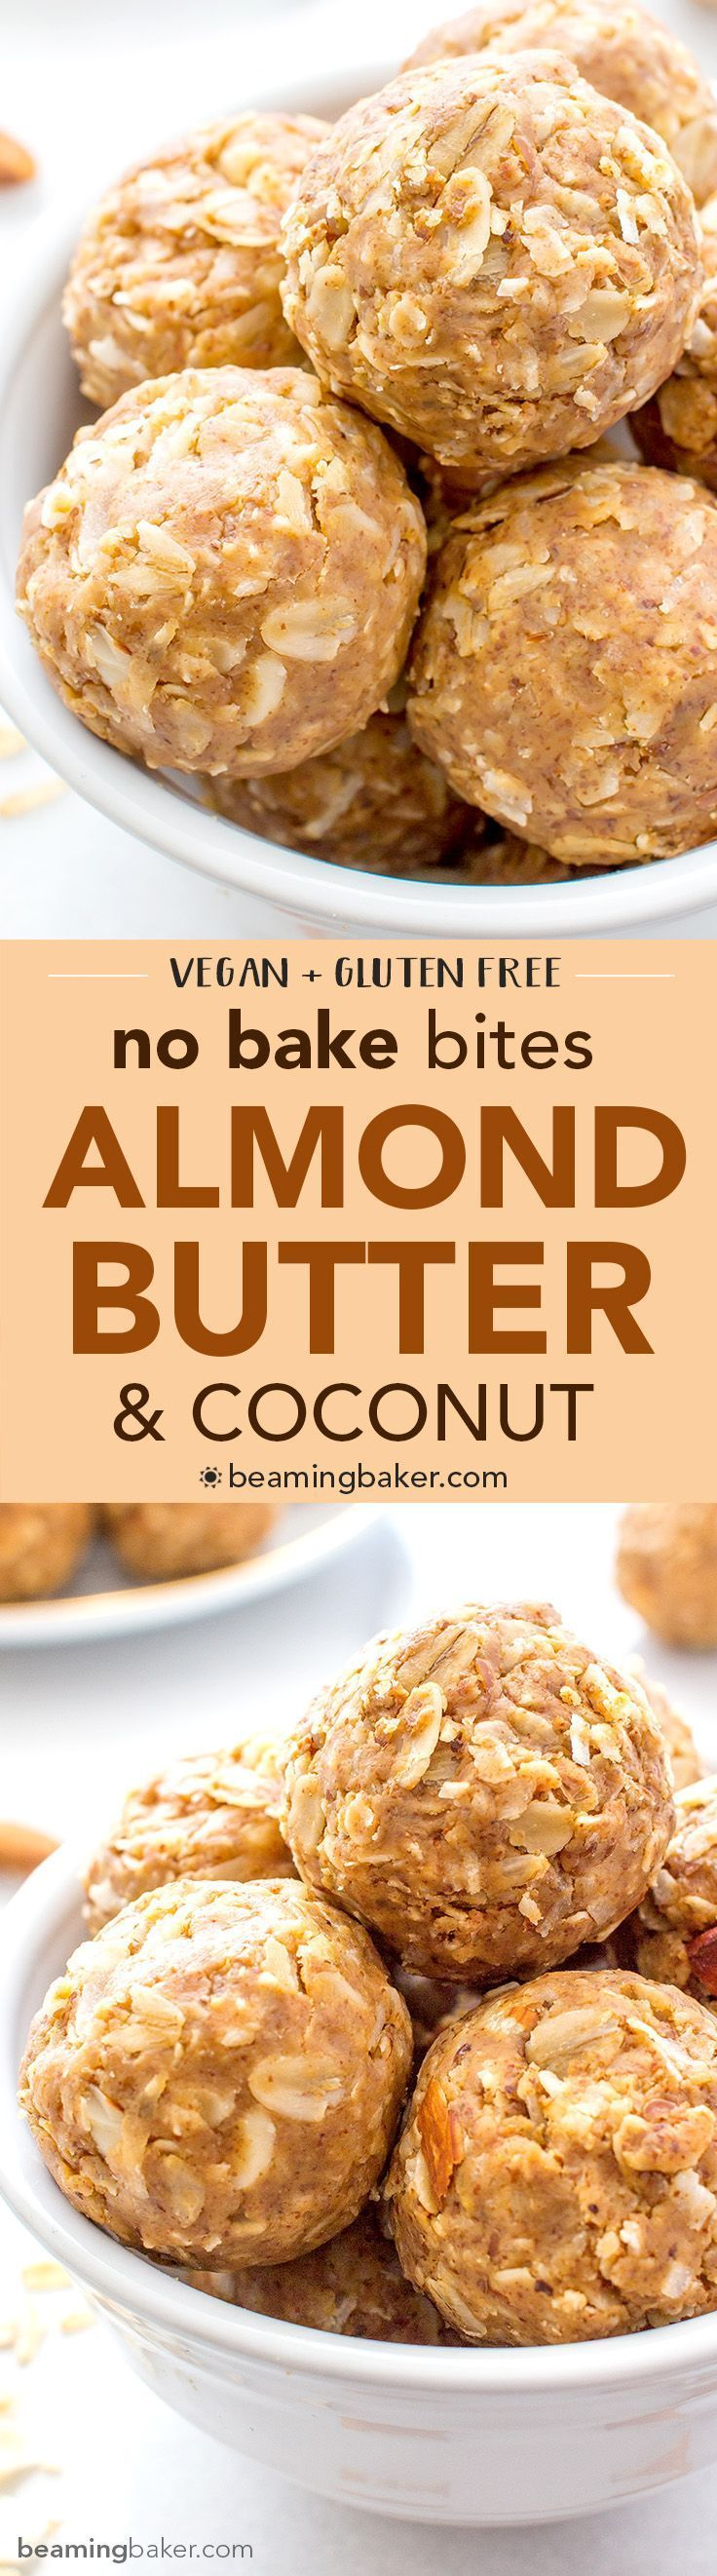 No Bake Almond Butter Coconut Bites (V+GF): Nutty, lightly sweet and satisfying energy bites made from just 6 simple ingredients. #Vegan #Gluten Free | http://BeamingBaker.com